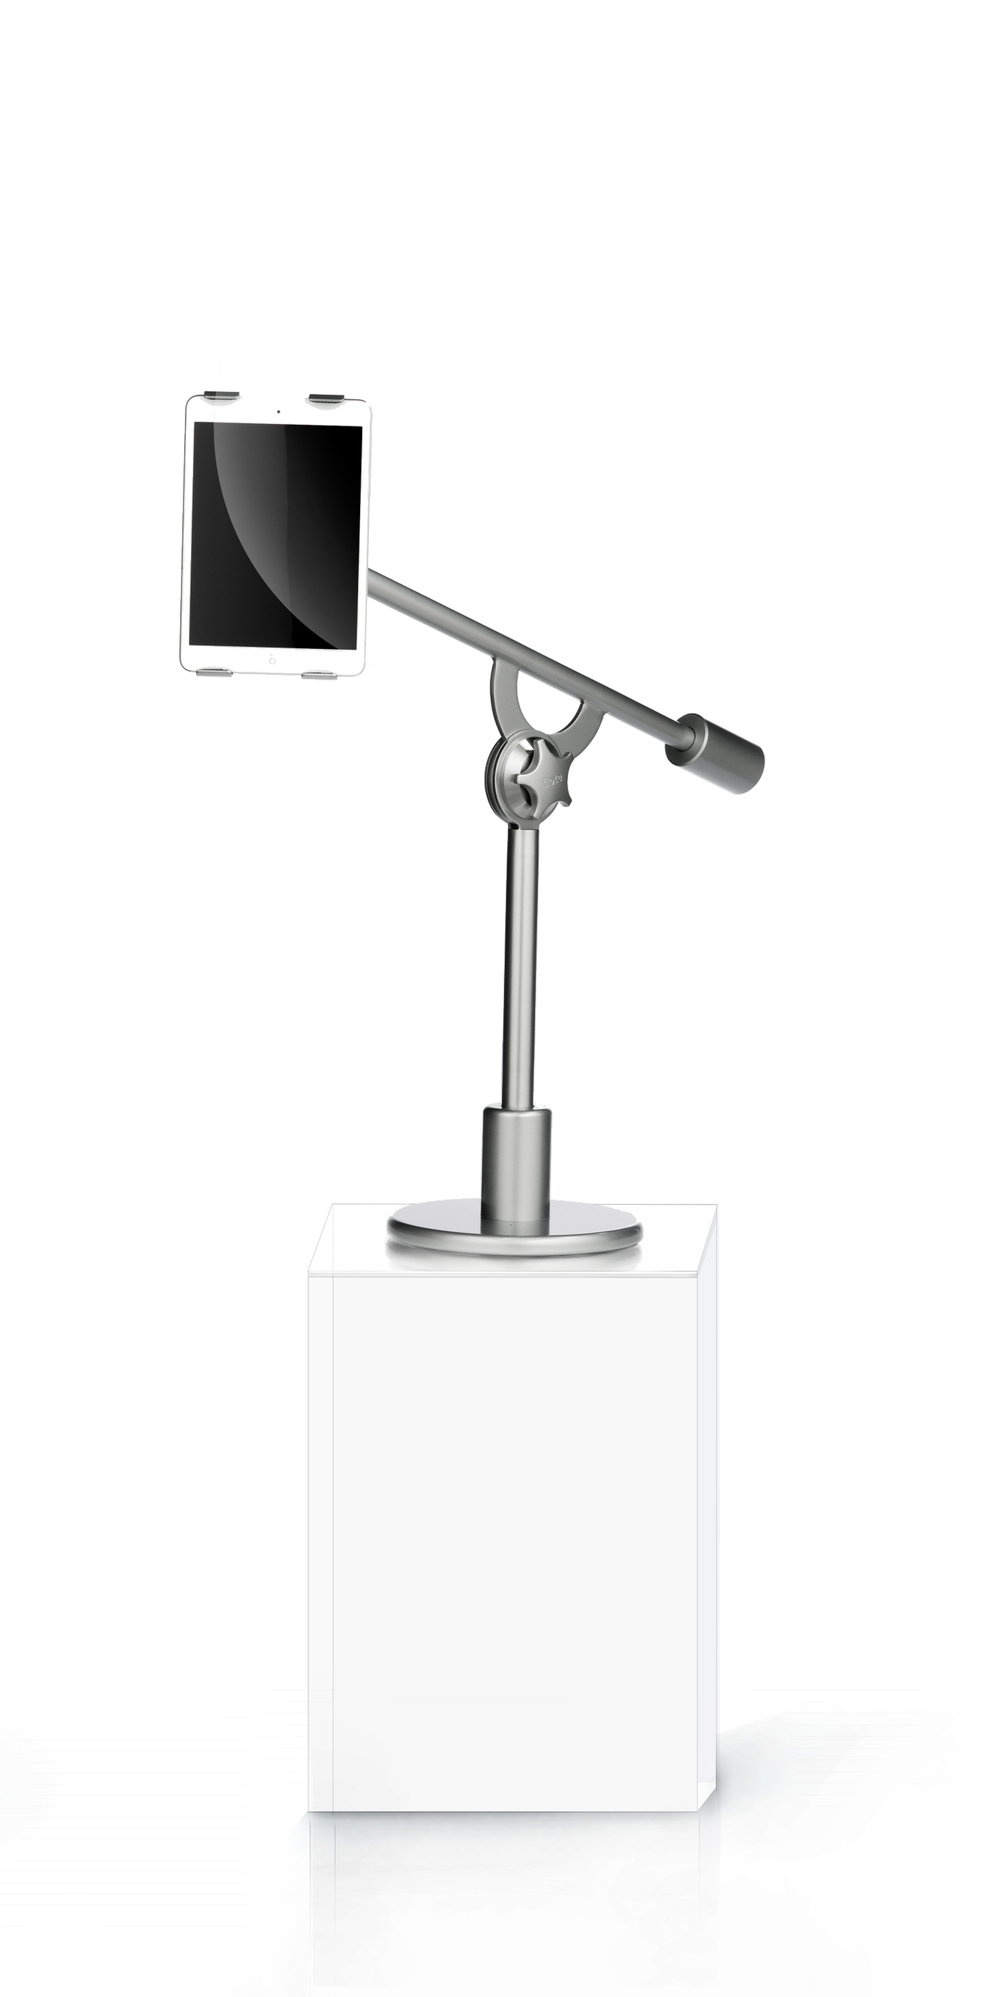 FLOTE Desktop stand for ipad and tablets